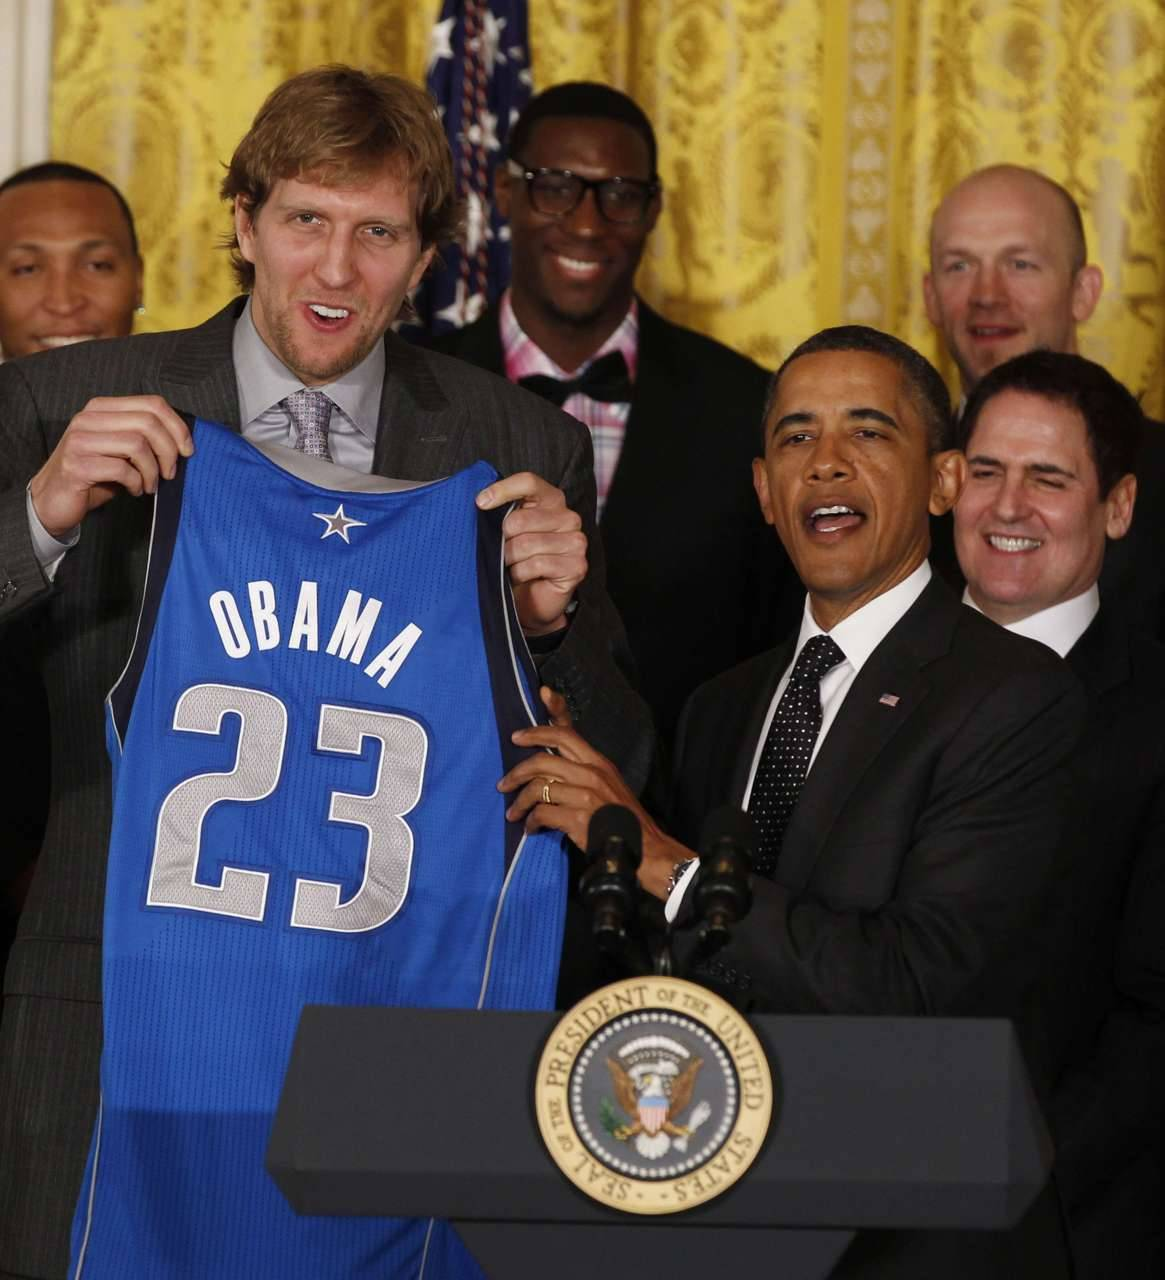 nationalpostsports:  Meet the Mavericks' newest memberJust kidding. U.S. President Obama receives a team jersey from Dallas Mavericks forward Dirk Nowitzki (L) while hosting the 2011 NBA champions in the East Room at the White House in Washington, January 9, 2012. At right behind Obama is team owner Mark Cuban. REUTERS/Larry Downing